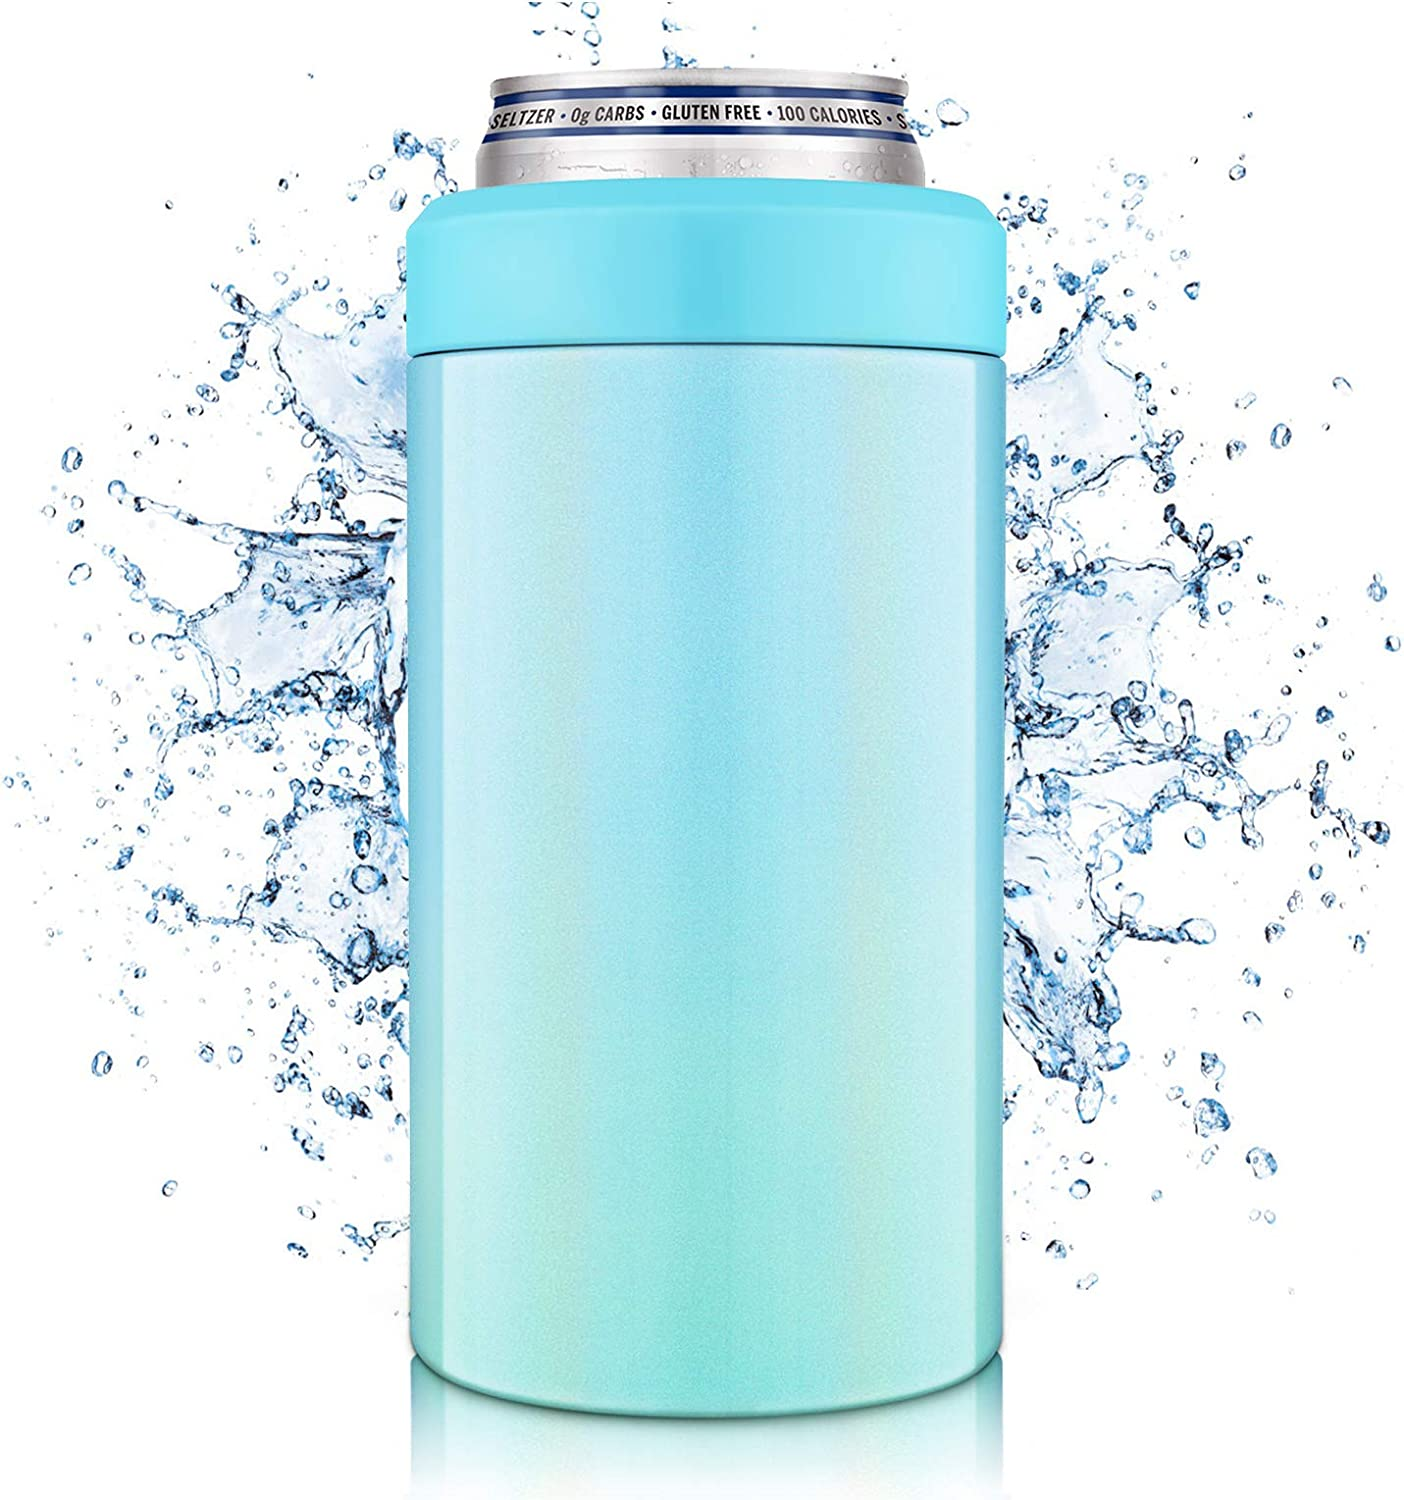 NIXIUKOL 4-IN-1 Insulated Can Cooler, Insulator for 12 Ounce Standard/Tall Skinny Slim Cans, 12 Oz Beer Bottles, Double-Walled Stainless Steel, for Women/Men